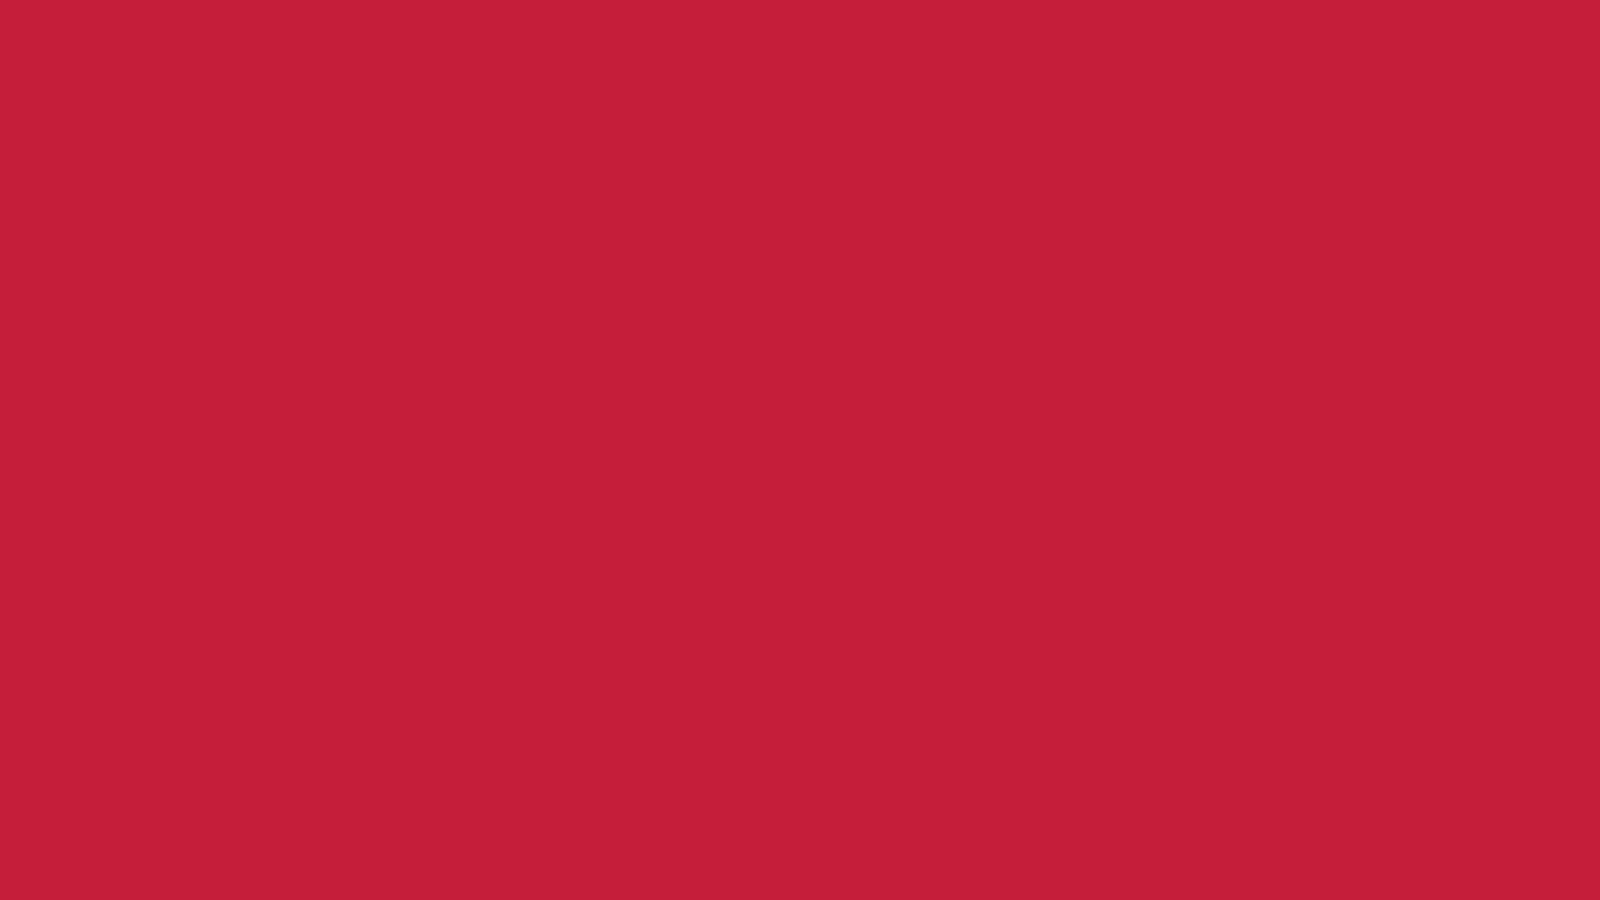 1600x900 Cardinal Solid Color Background